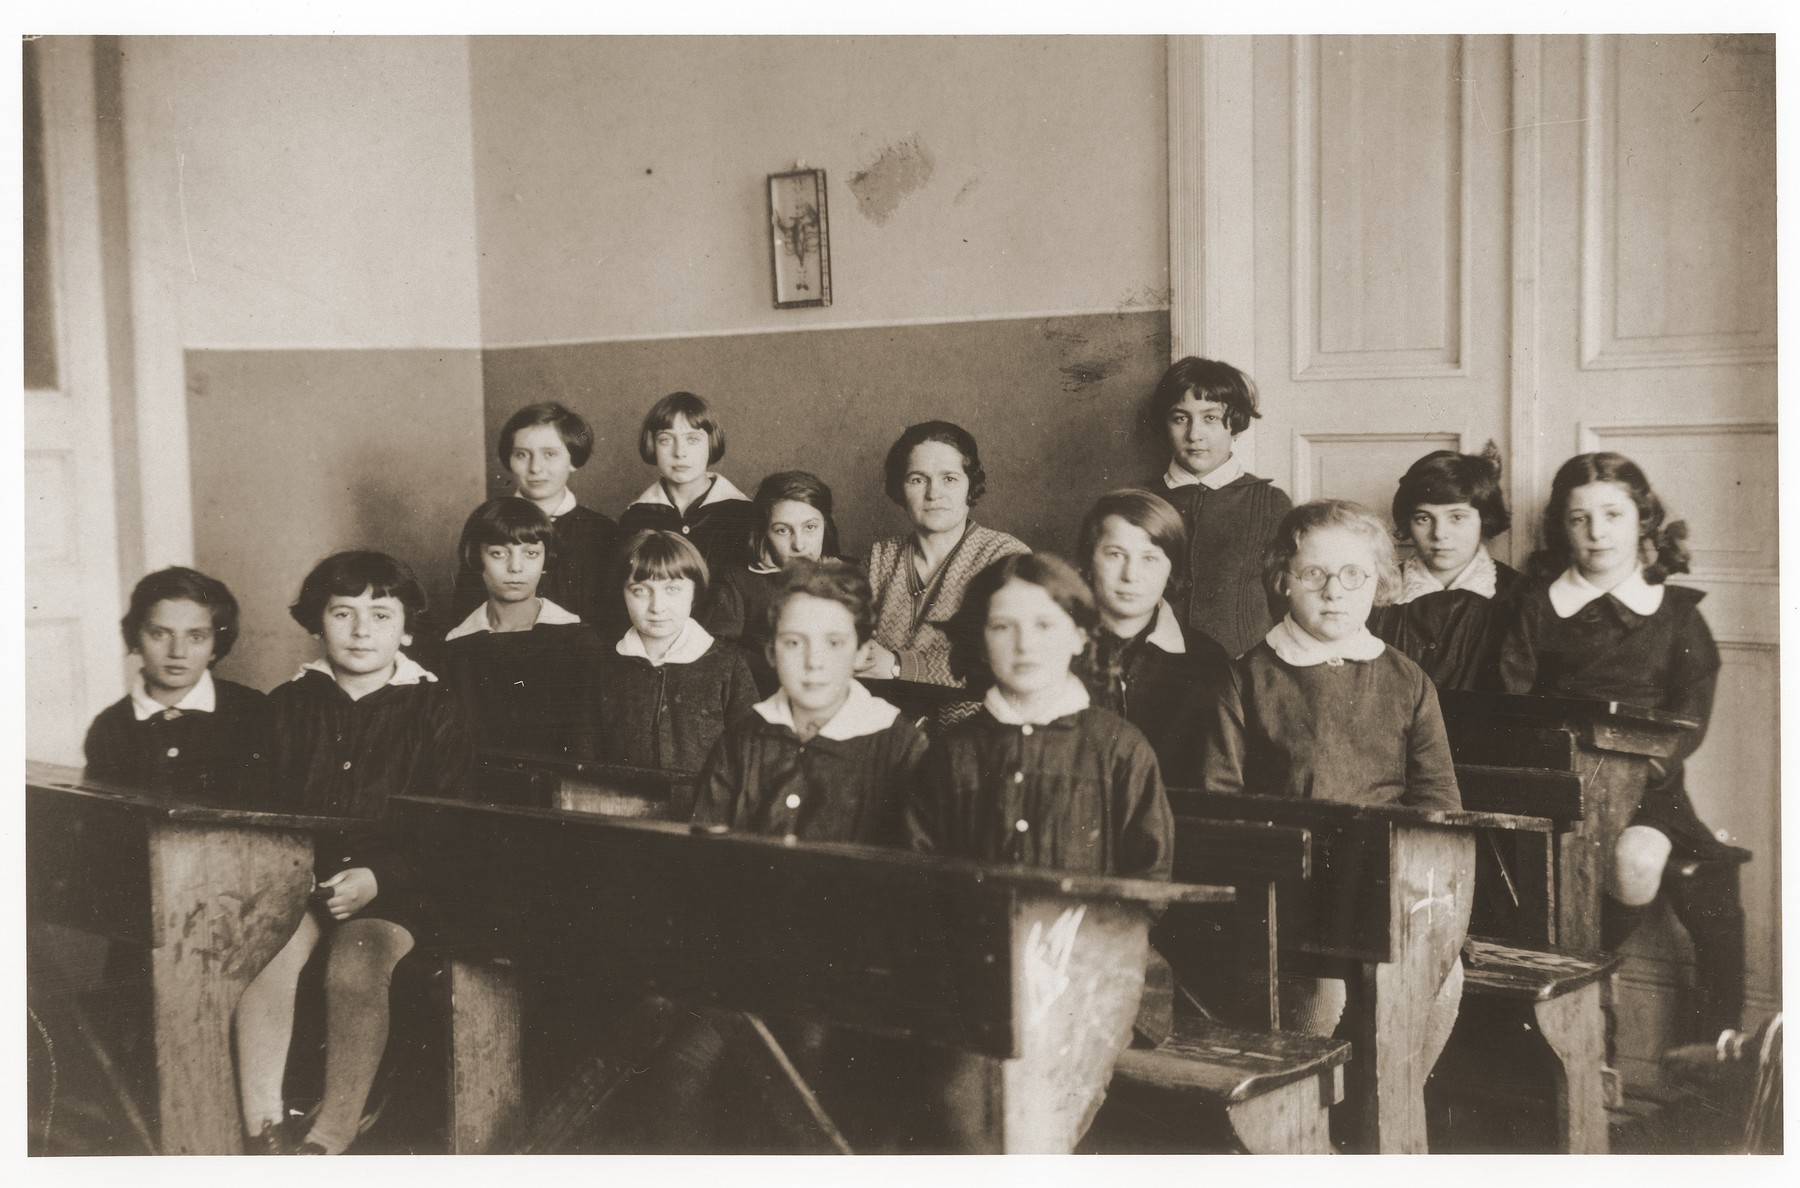 Students are seated at their desks in a classroom at the Chawatselet Jewish gymnasium for girls in Warsaw.  Among those pictured is Rivka Radzinski (first from the right).